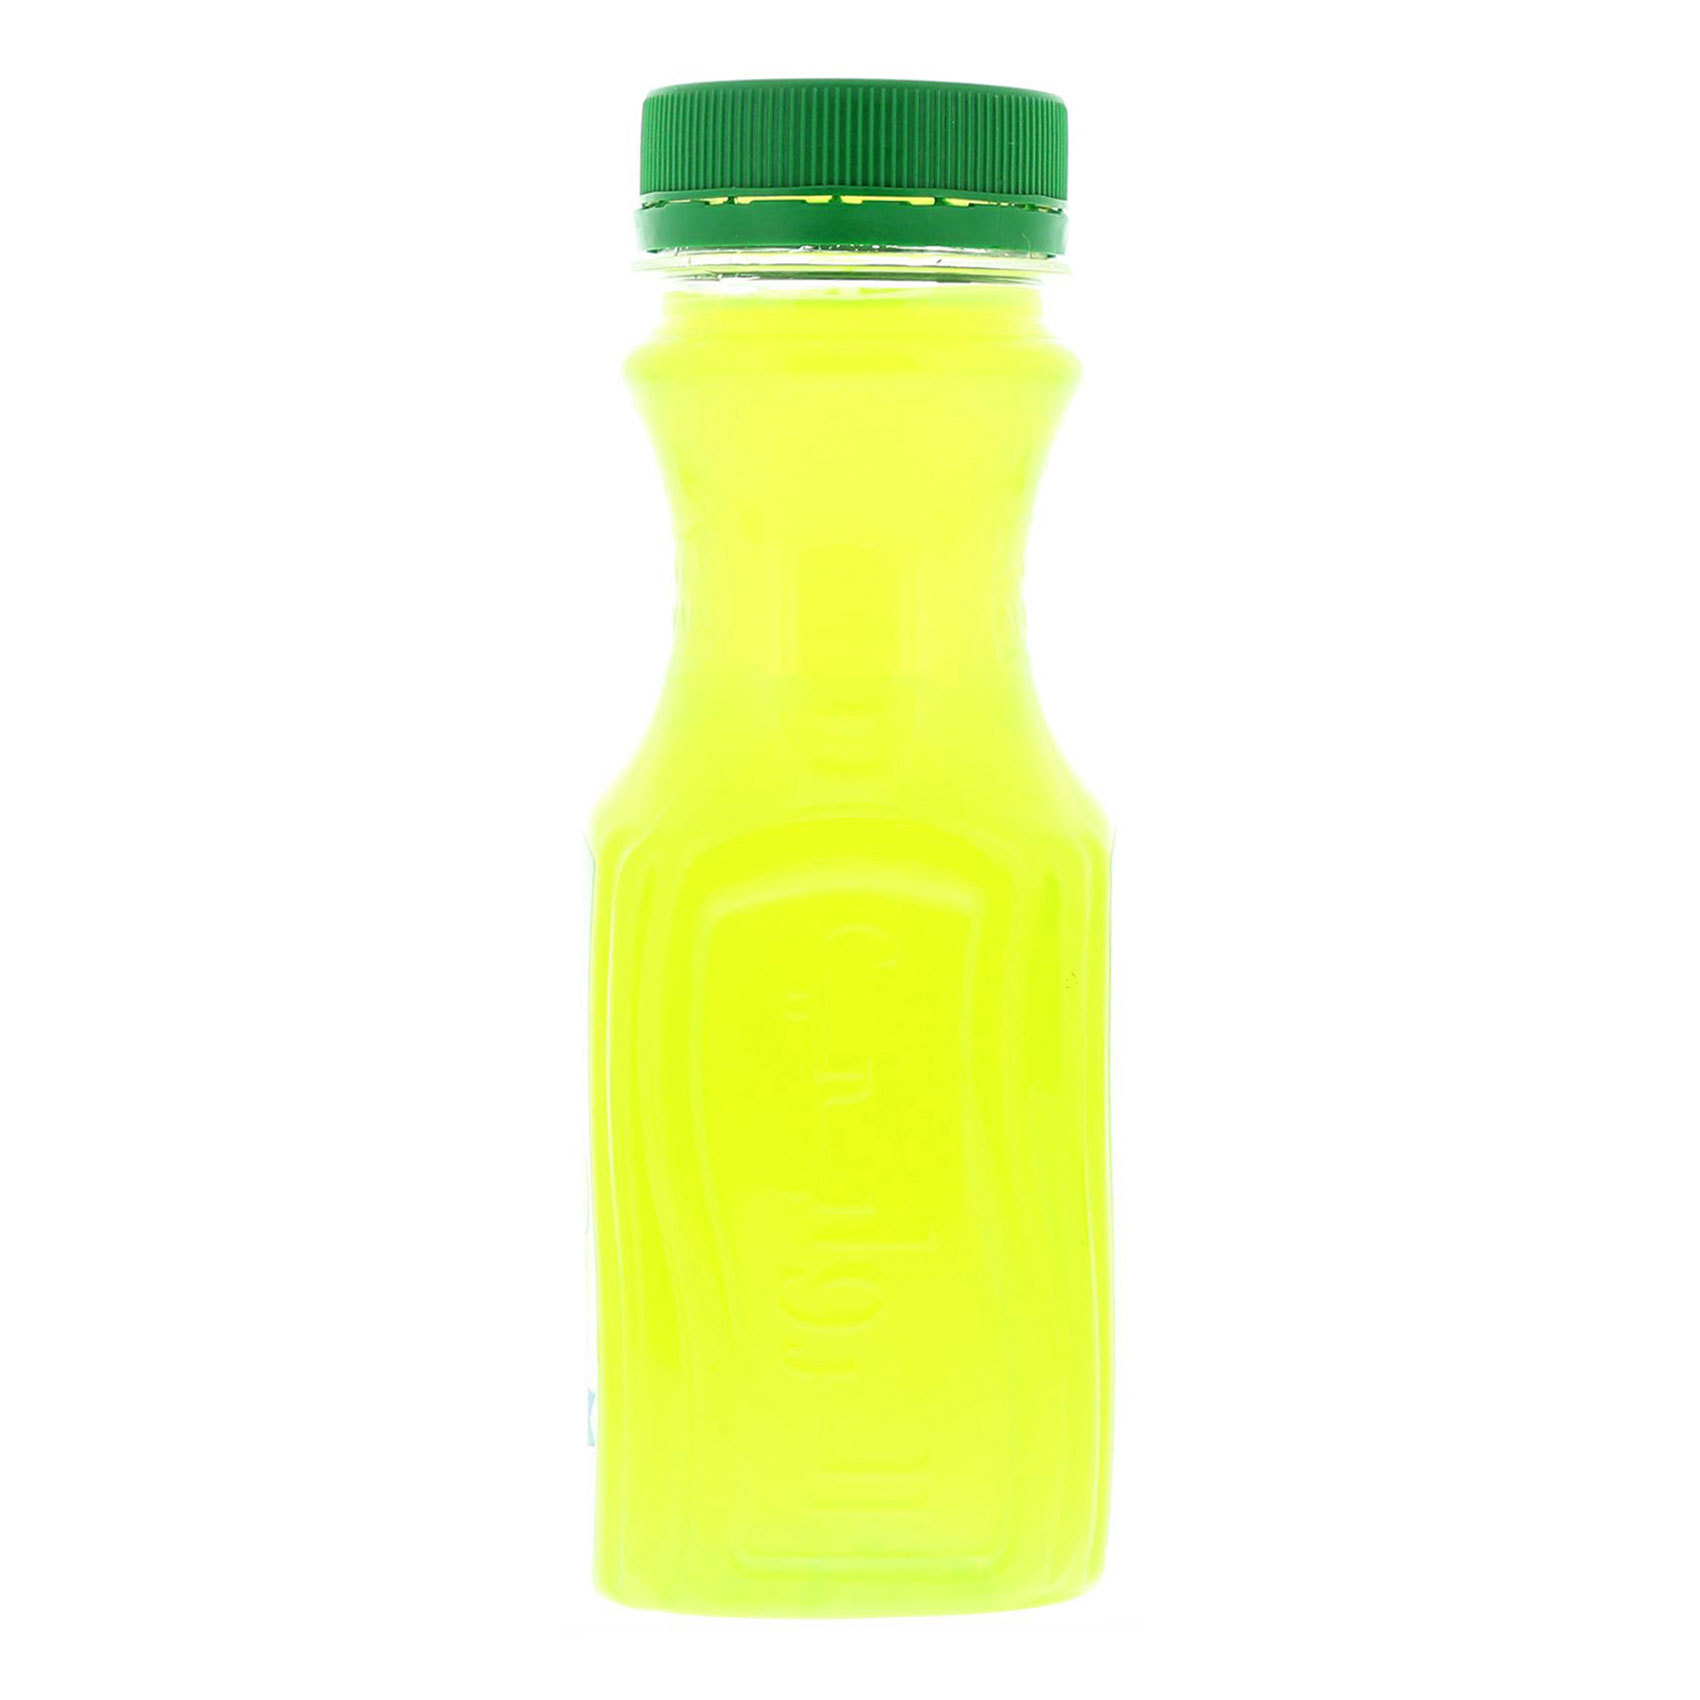 AL RAWABI KIWI & LIME JUICE 200ML